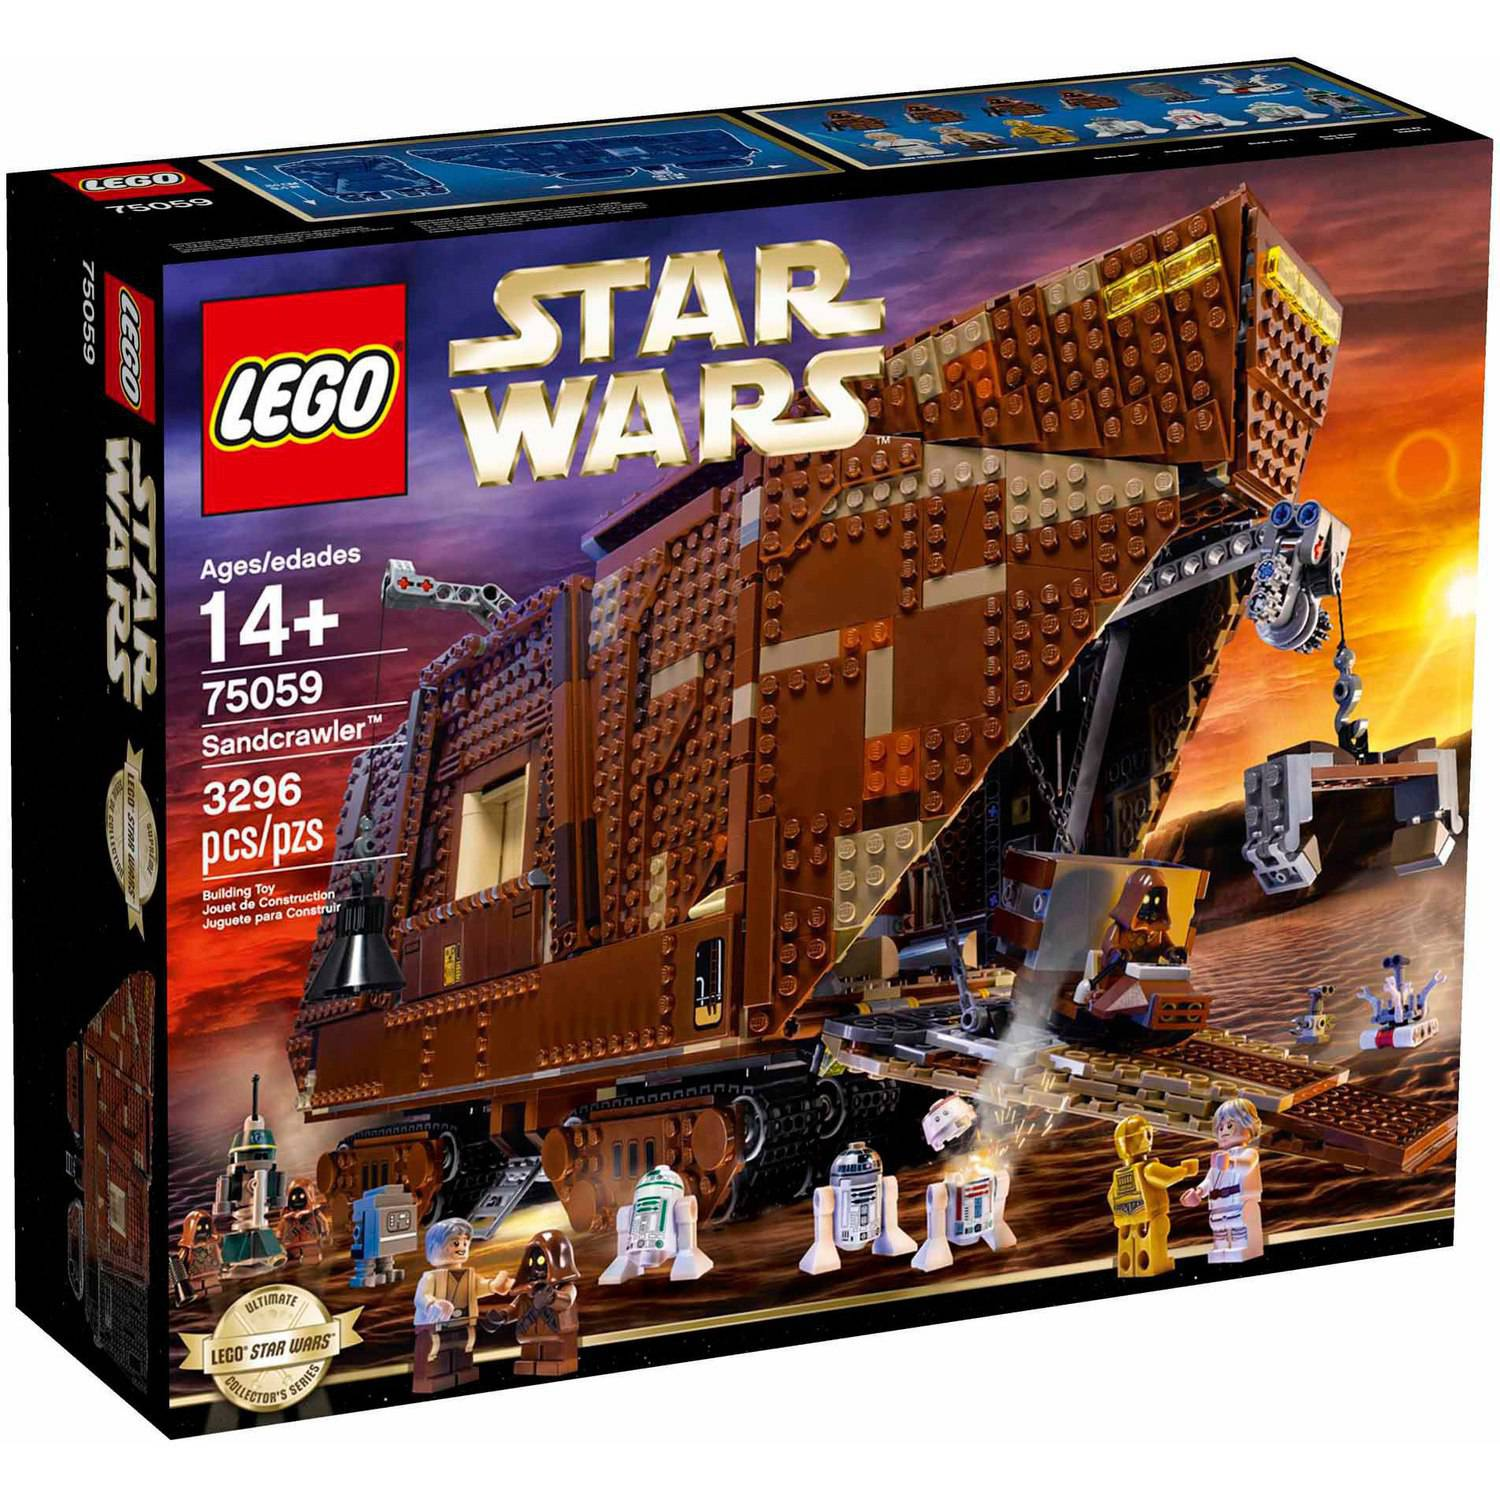 LEGO Star Wars Sandcrawler Play Set